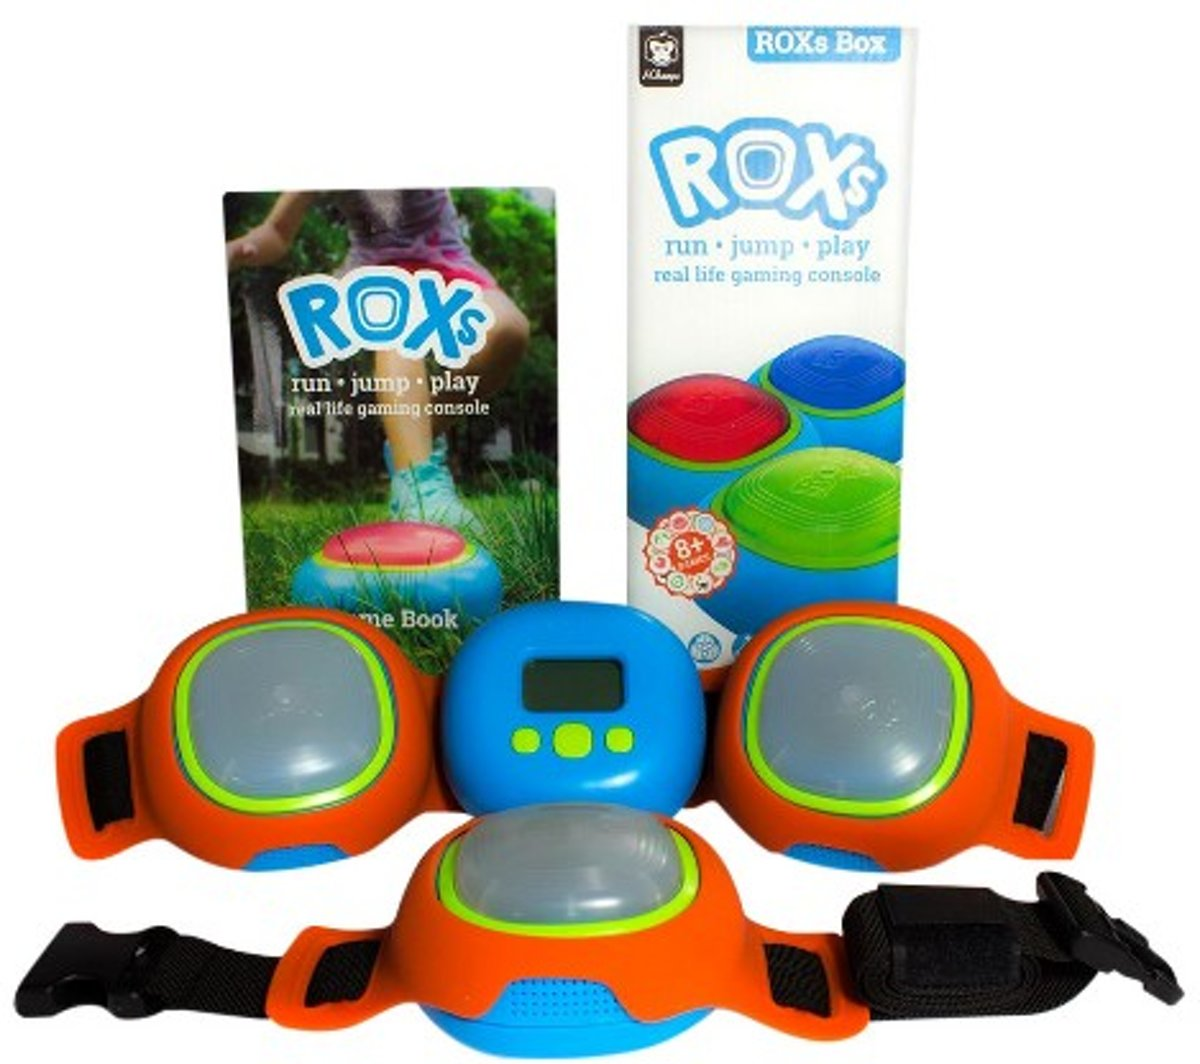 Roxs Box active gaming console